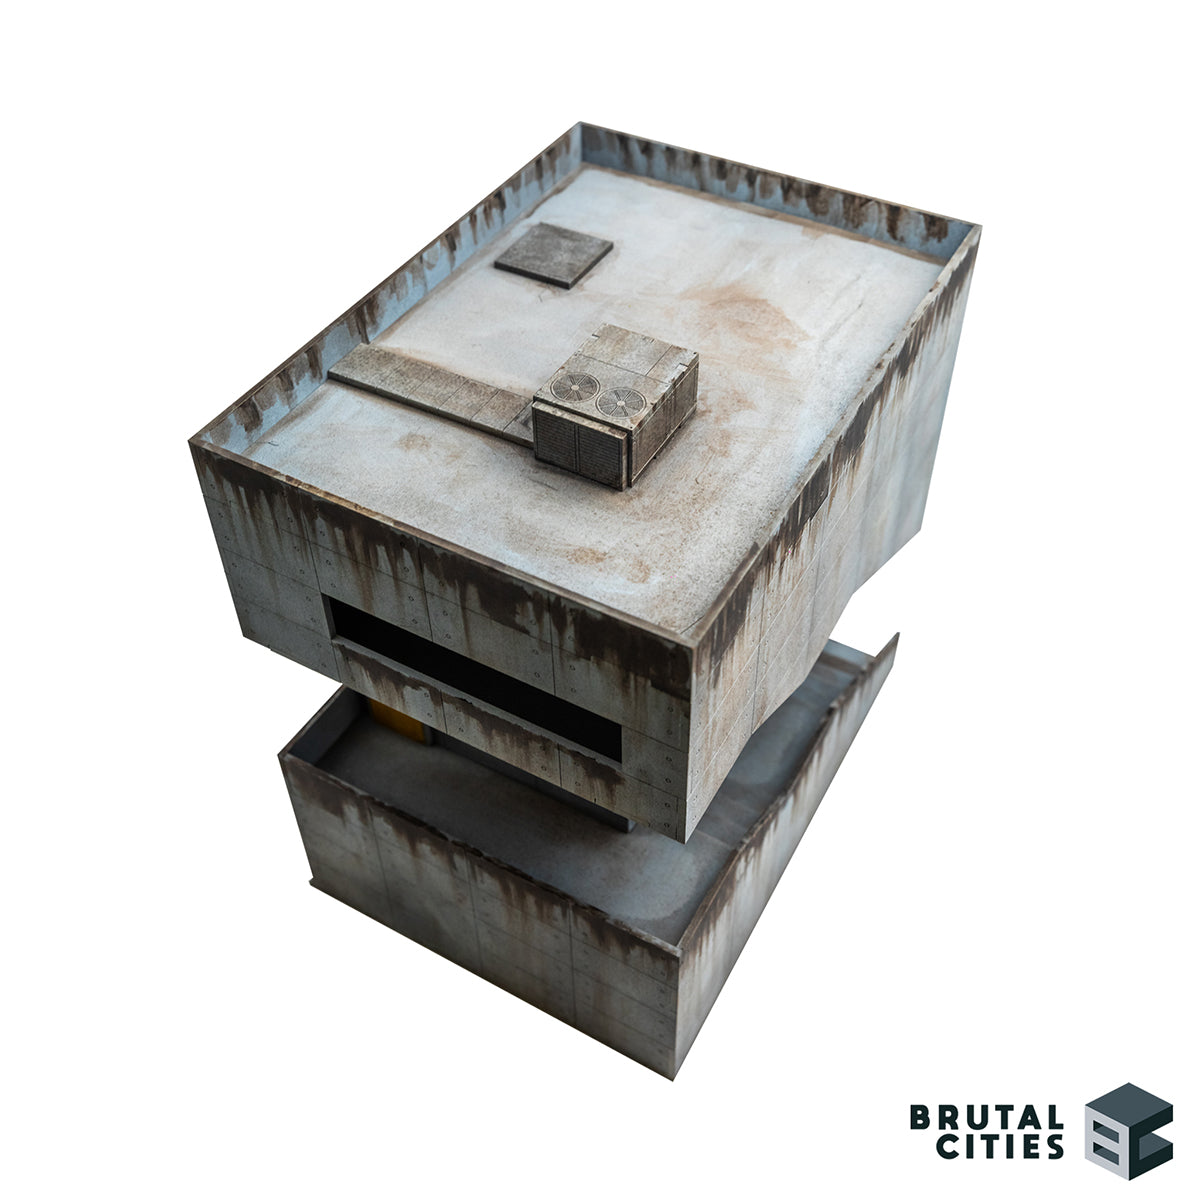 Rooftop view of cyberpunk and brutalist inspired MDF wargaming terrain building.